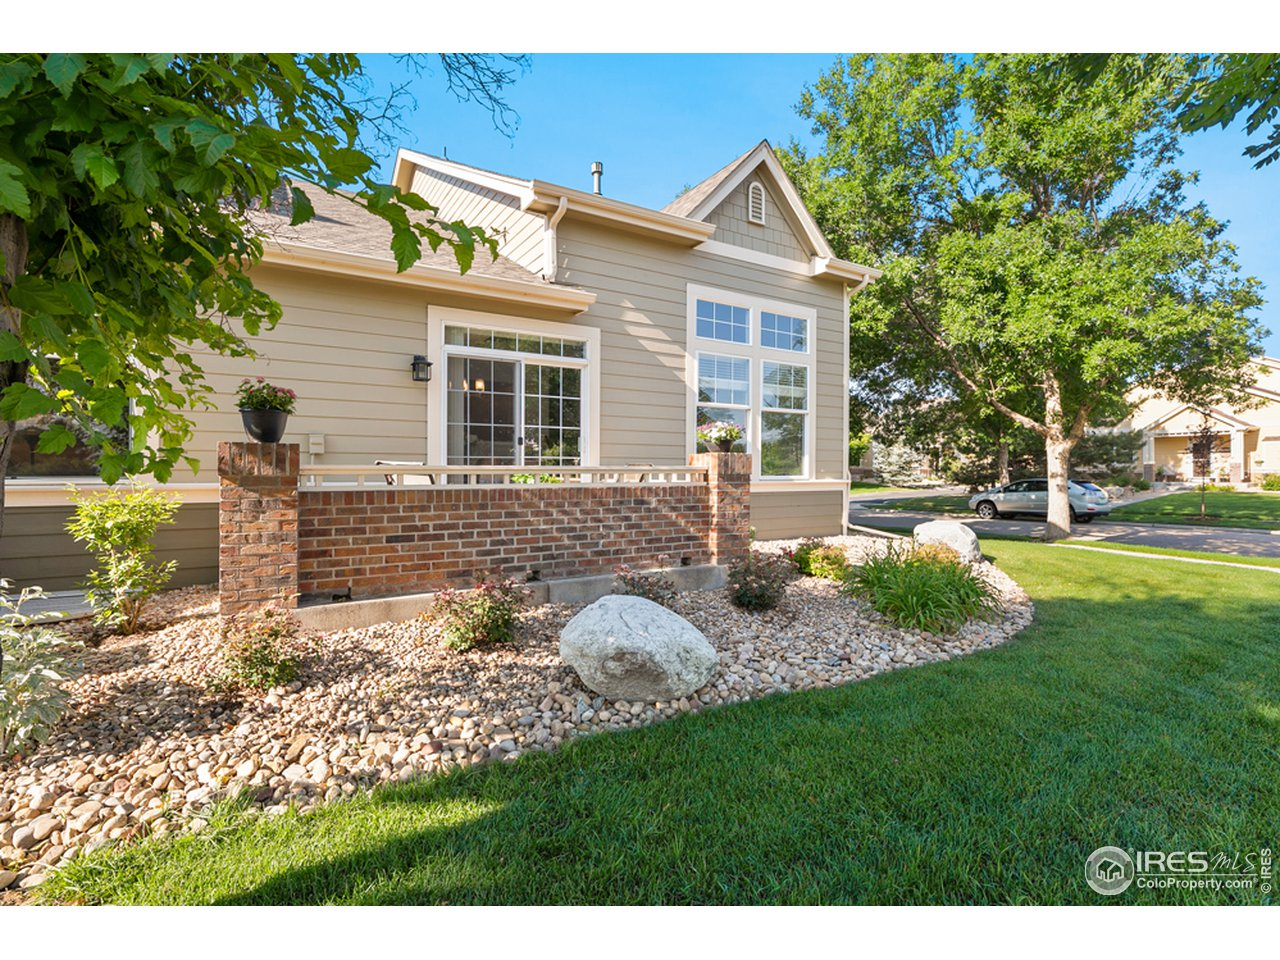 Surrounded by Mature Trees and Landscape Maintained by HOA